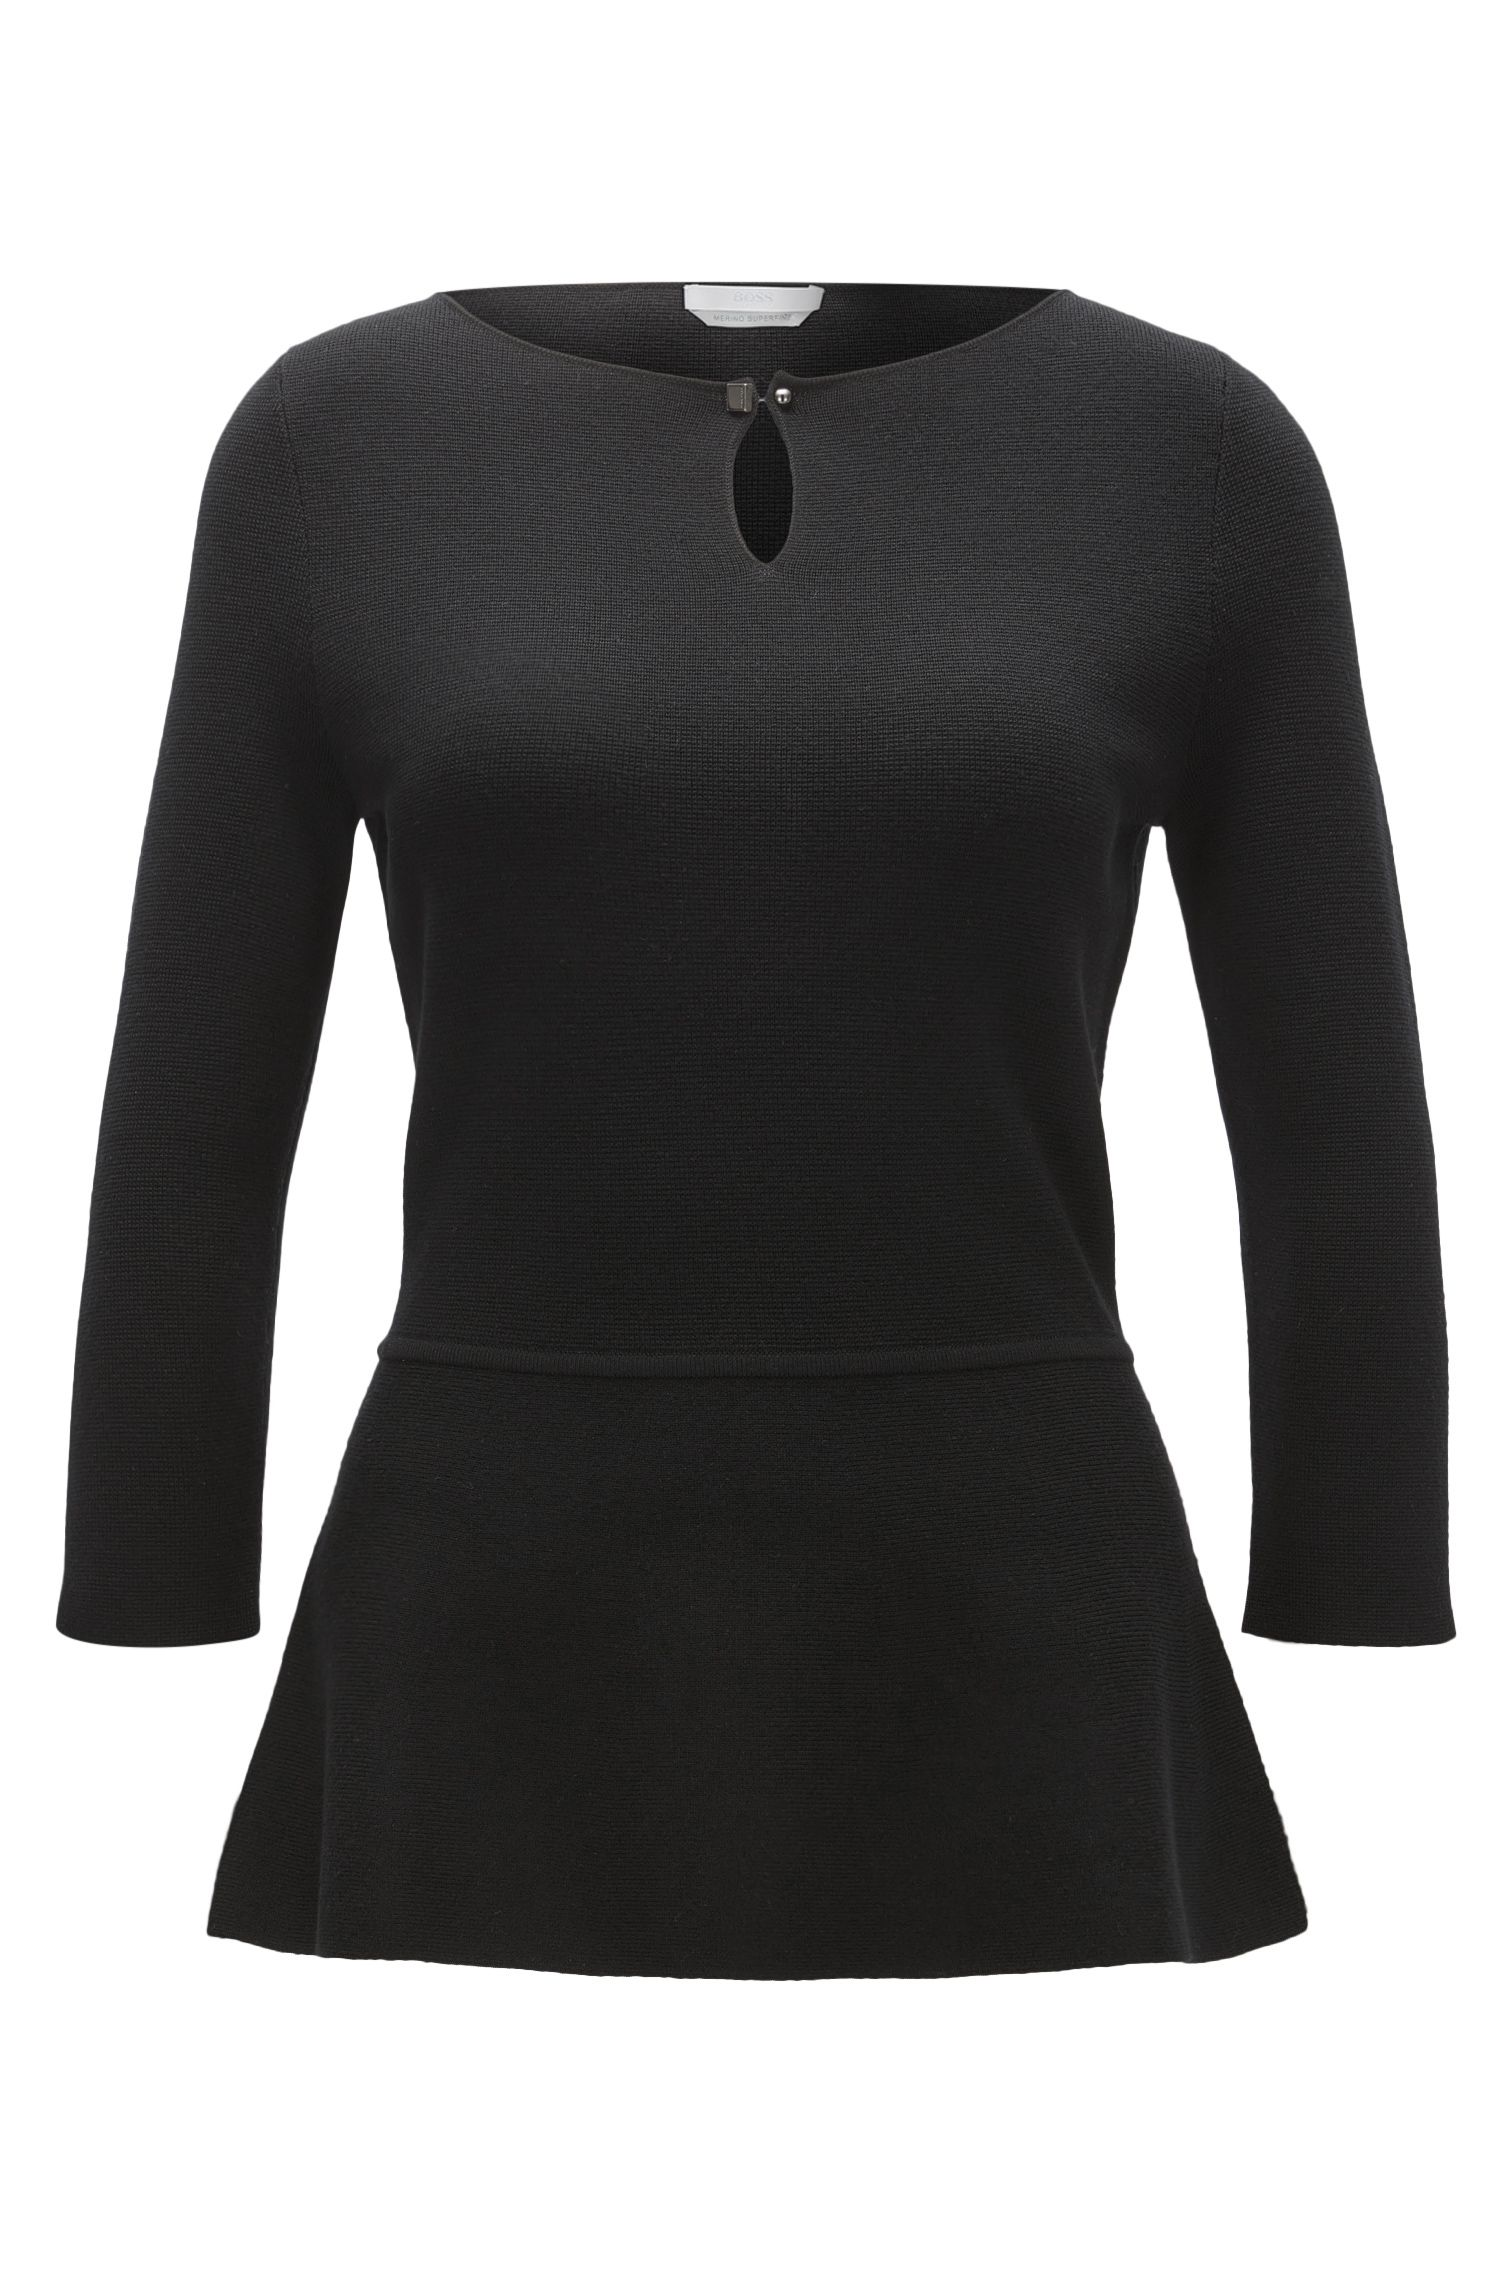 Superfine Merino Wool Peplum Top | Fylle